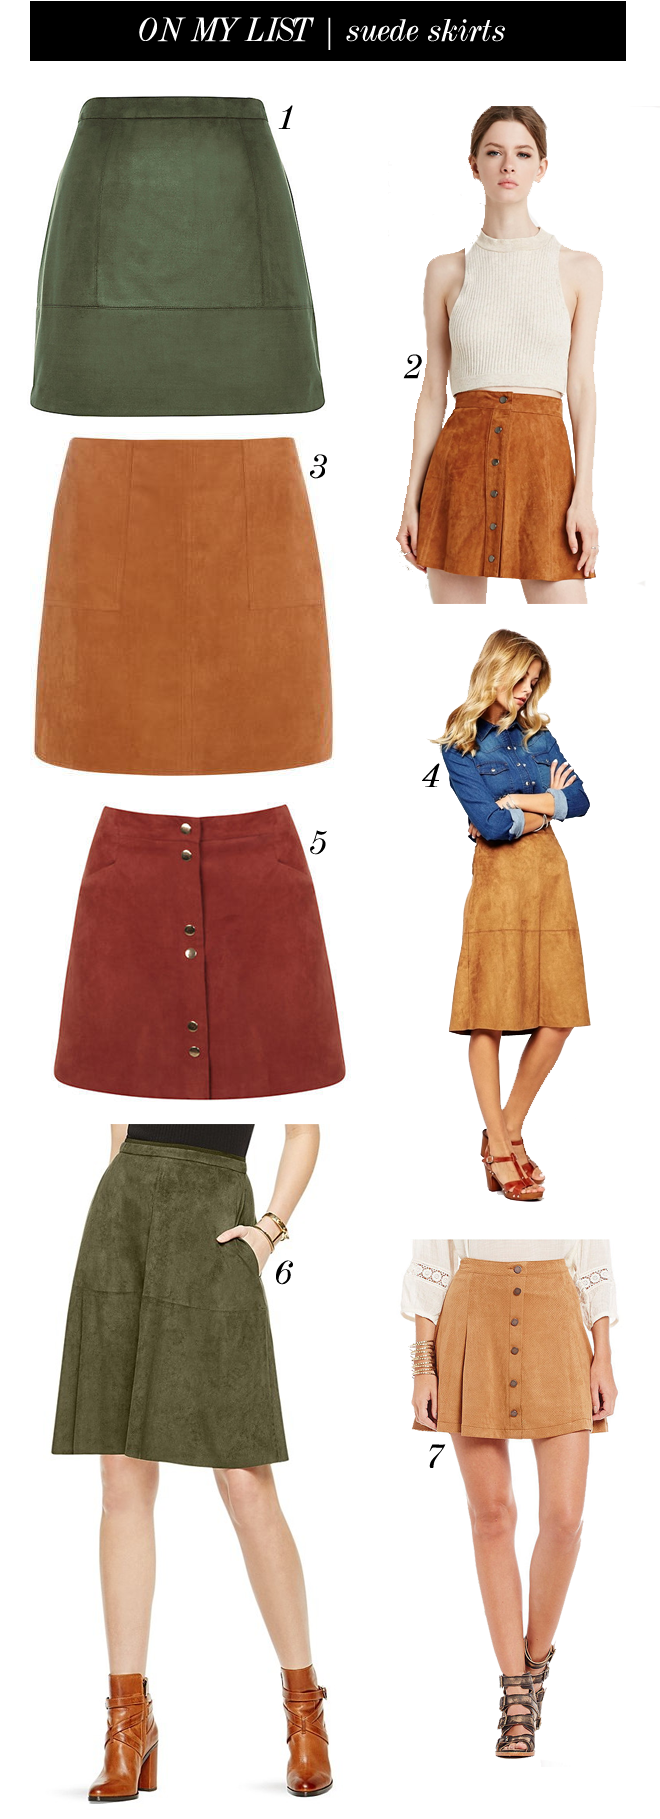 on my list suede skirts